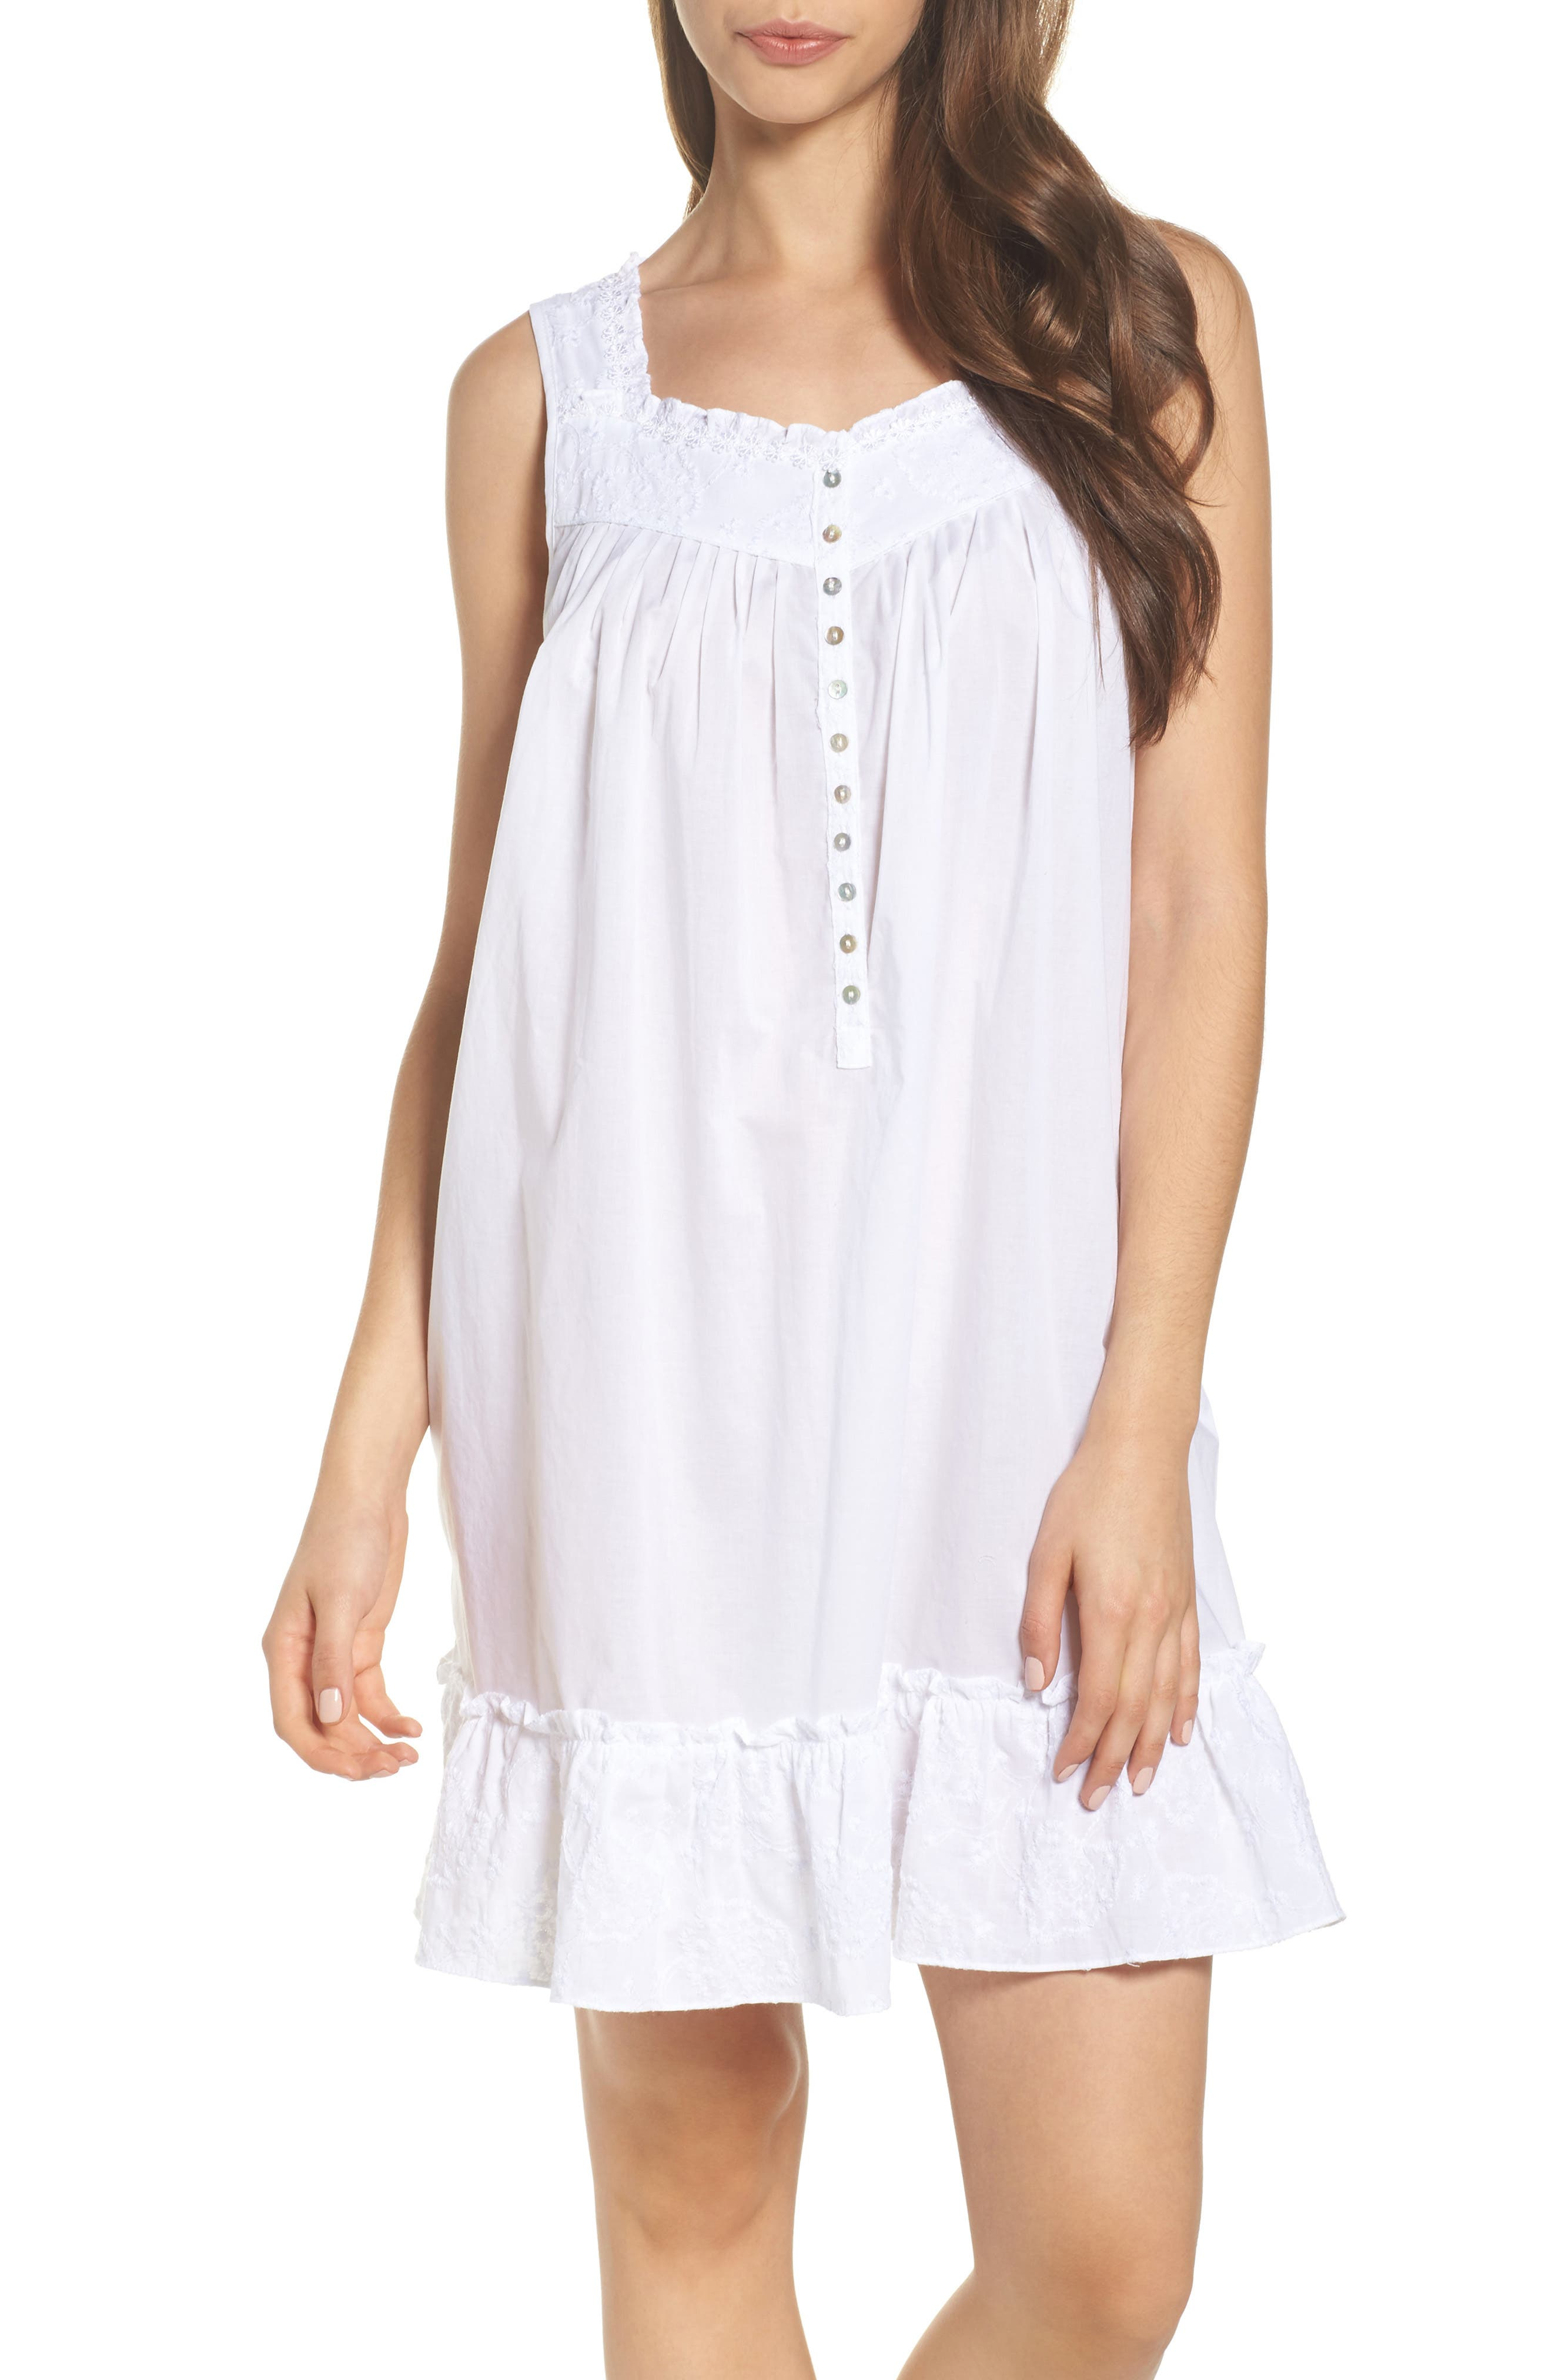 Embroidered Cotton Nightgown,                             Main thumbnail 1, color,                             White Floral Embroidery